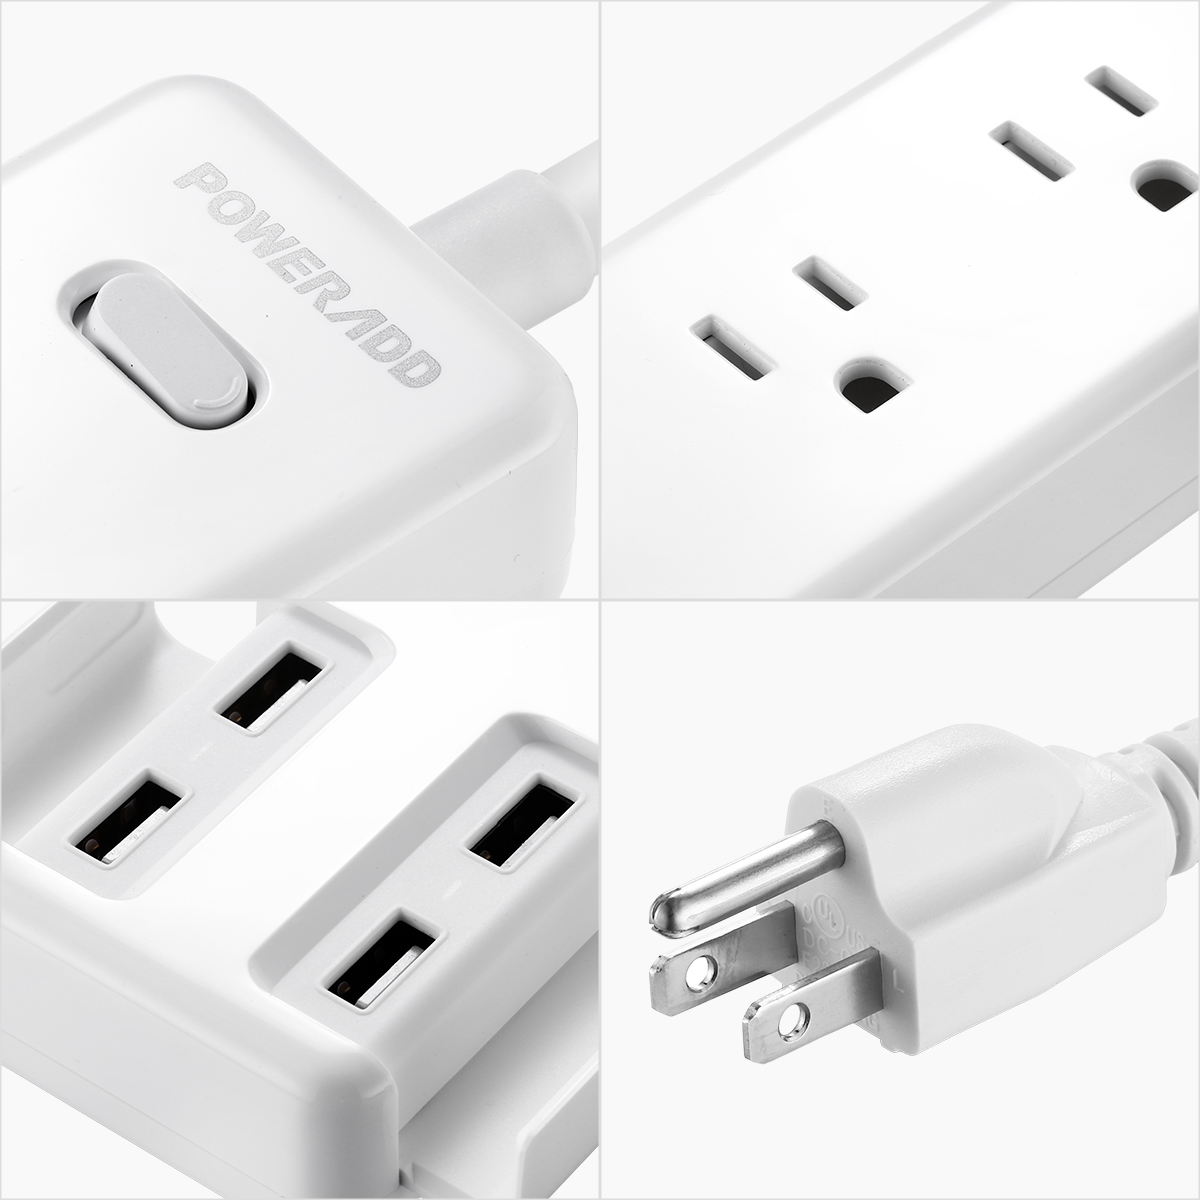 poweradd 5ft 3 outlet 4 usb port power strip with surge protector lightningproof ebay. Black Bedroom Furniture Sets. Home Design Ideas